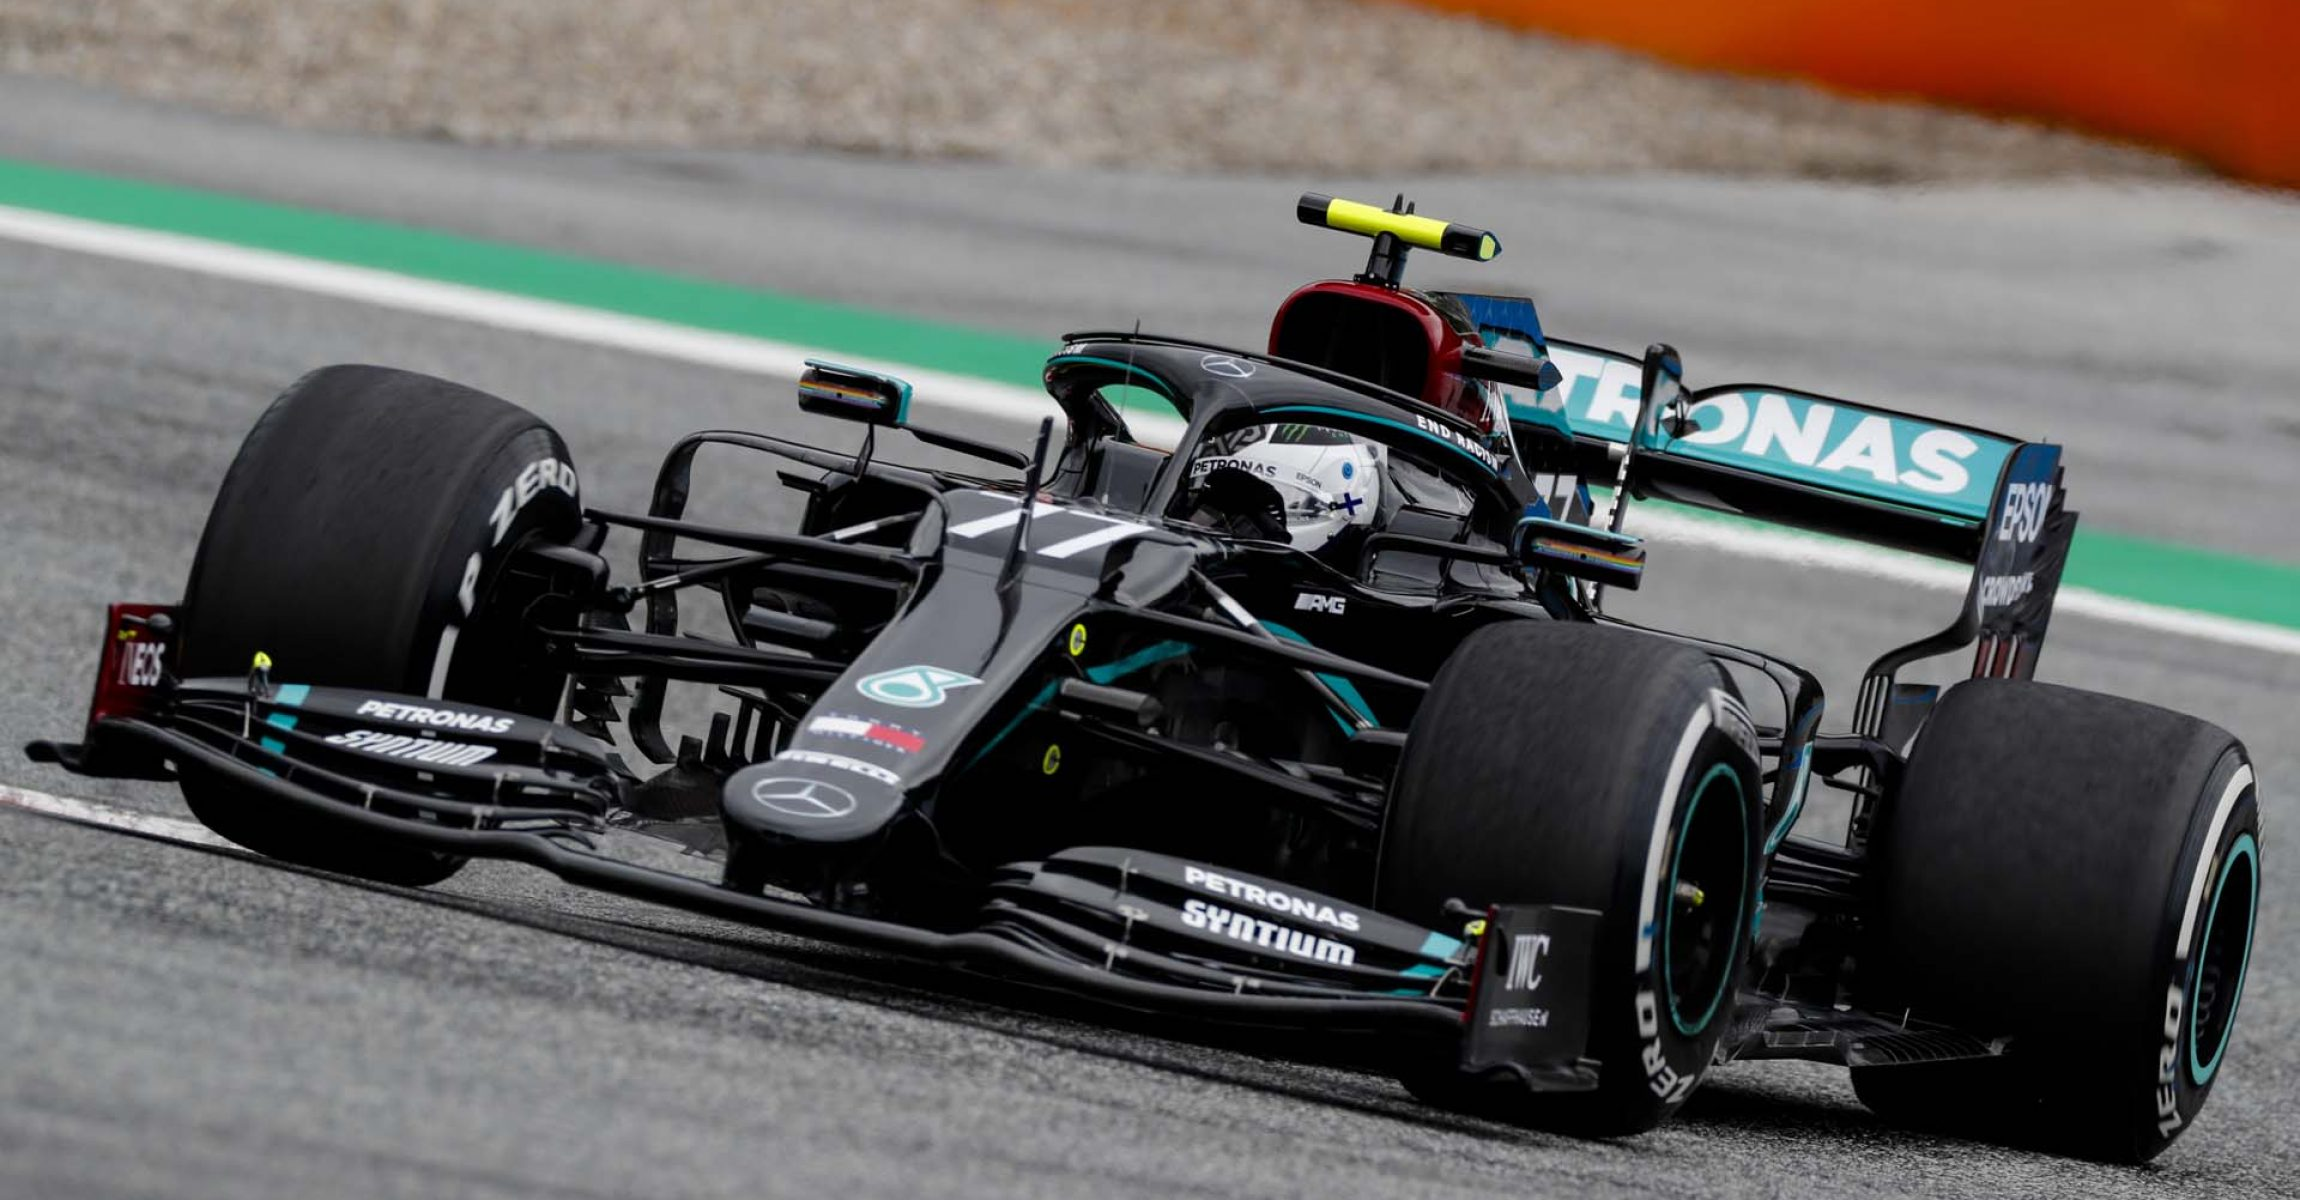 JULY 03: Valtteri Bottas, Mercedes F1 W11 EQ Performance during the Austrian GP on Friday July 03, 2020. (Photo by Steven Tee / LAT Images)